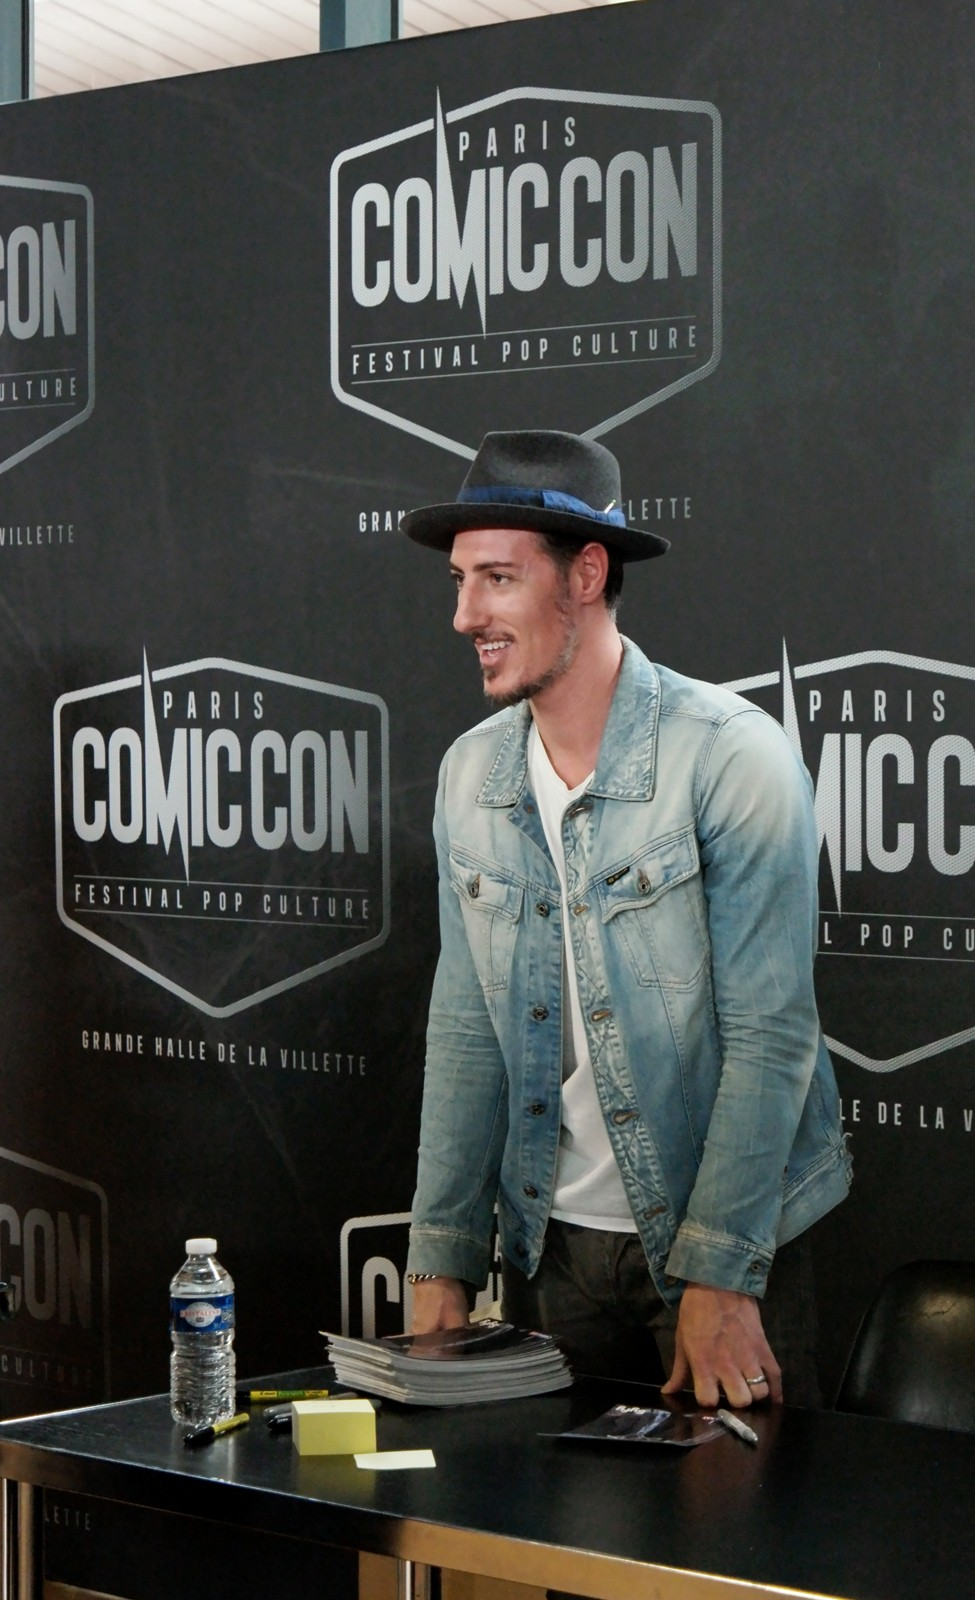 Eric Balfour Haven 24 Six Feet Under actor signing session Comic Con Paris festival 2015 séance dédicaces La Grande Halle de la Villette photo united states of paris blog